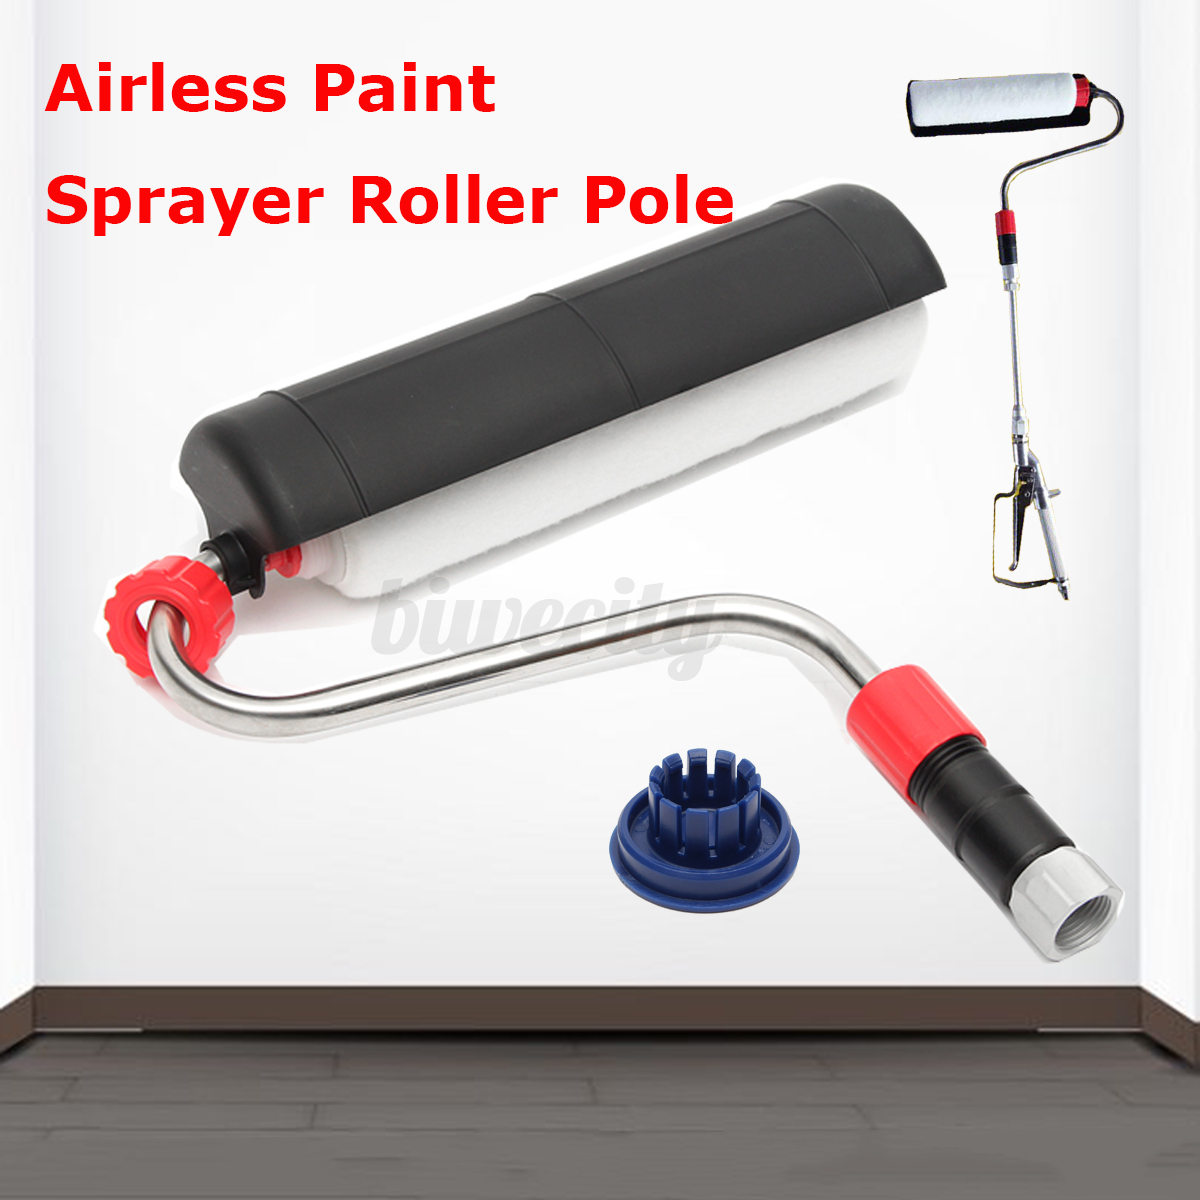 how to use wagner airless paint sprayer